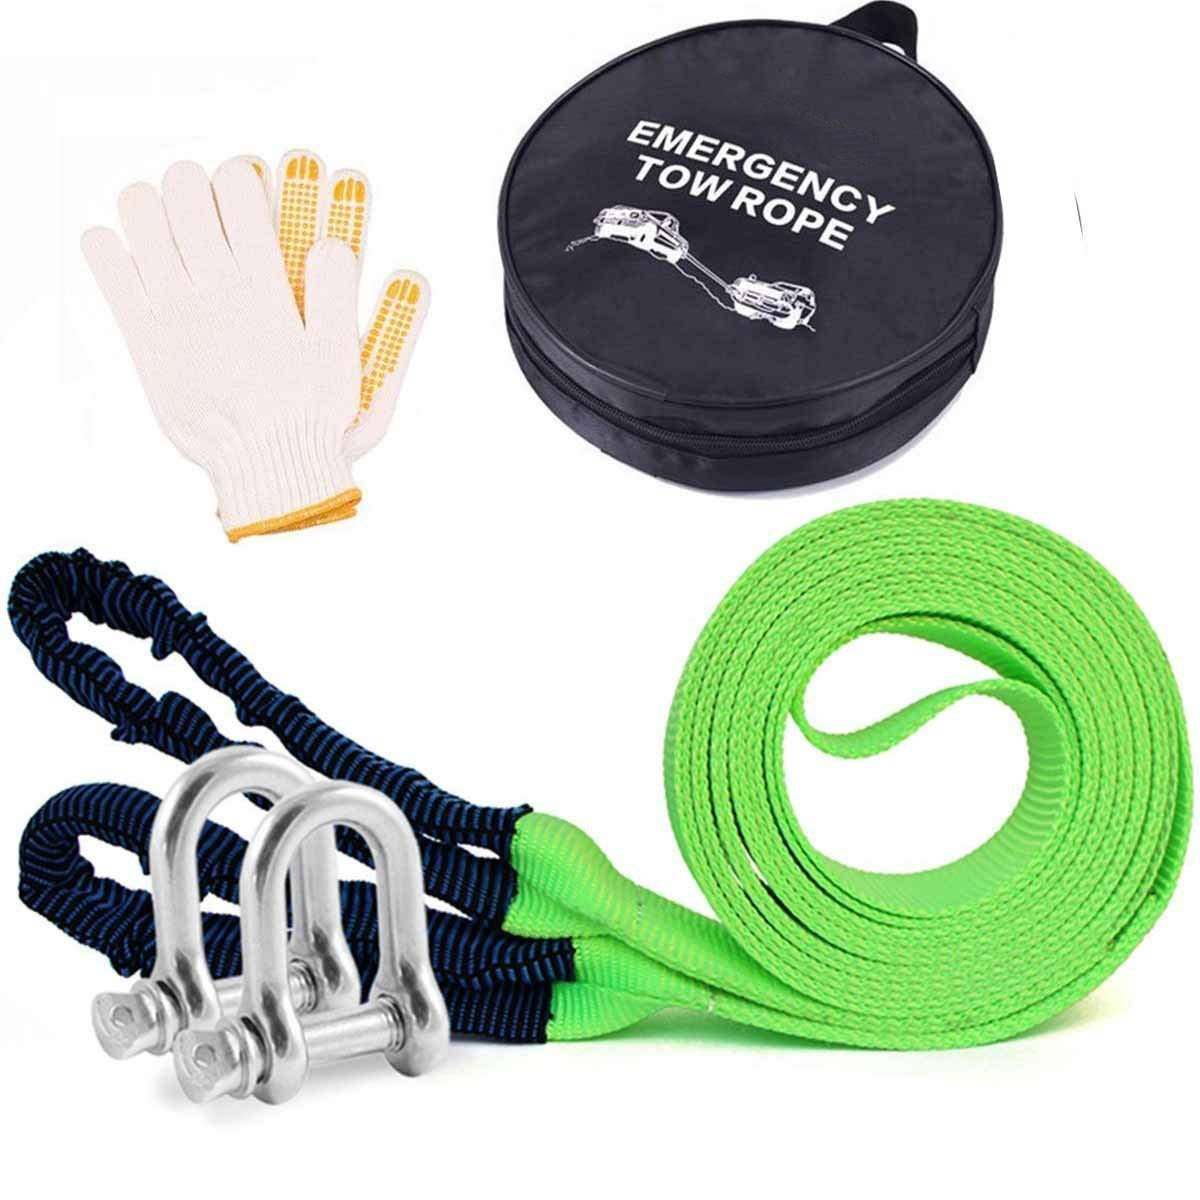 AIJIWU Tow Rope, Car Heavy Duty Recovery Tow Straps 17600Ib 8 Ton 5M With 2 hooks 2 Anti-Proof Gloves AEA group